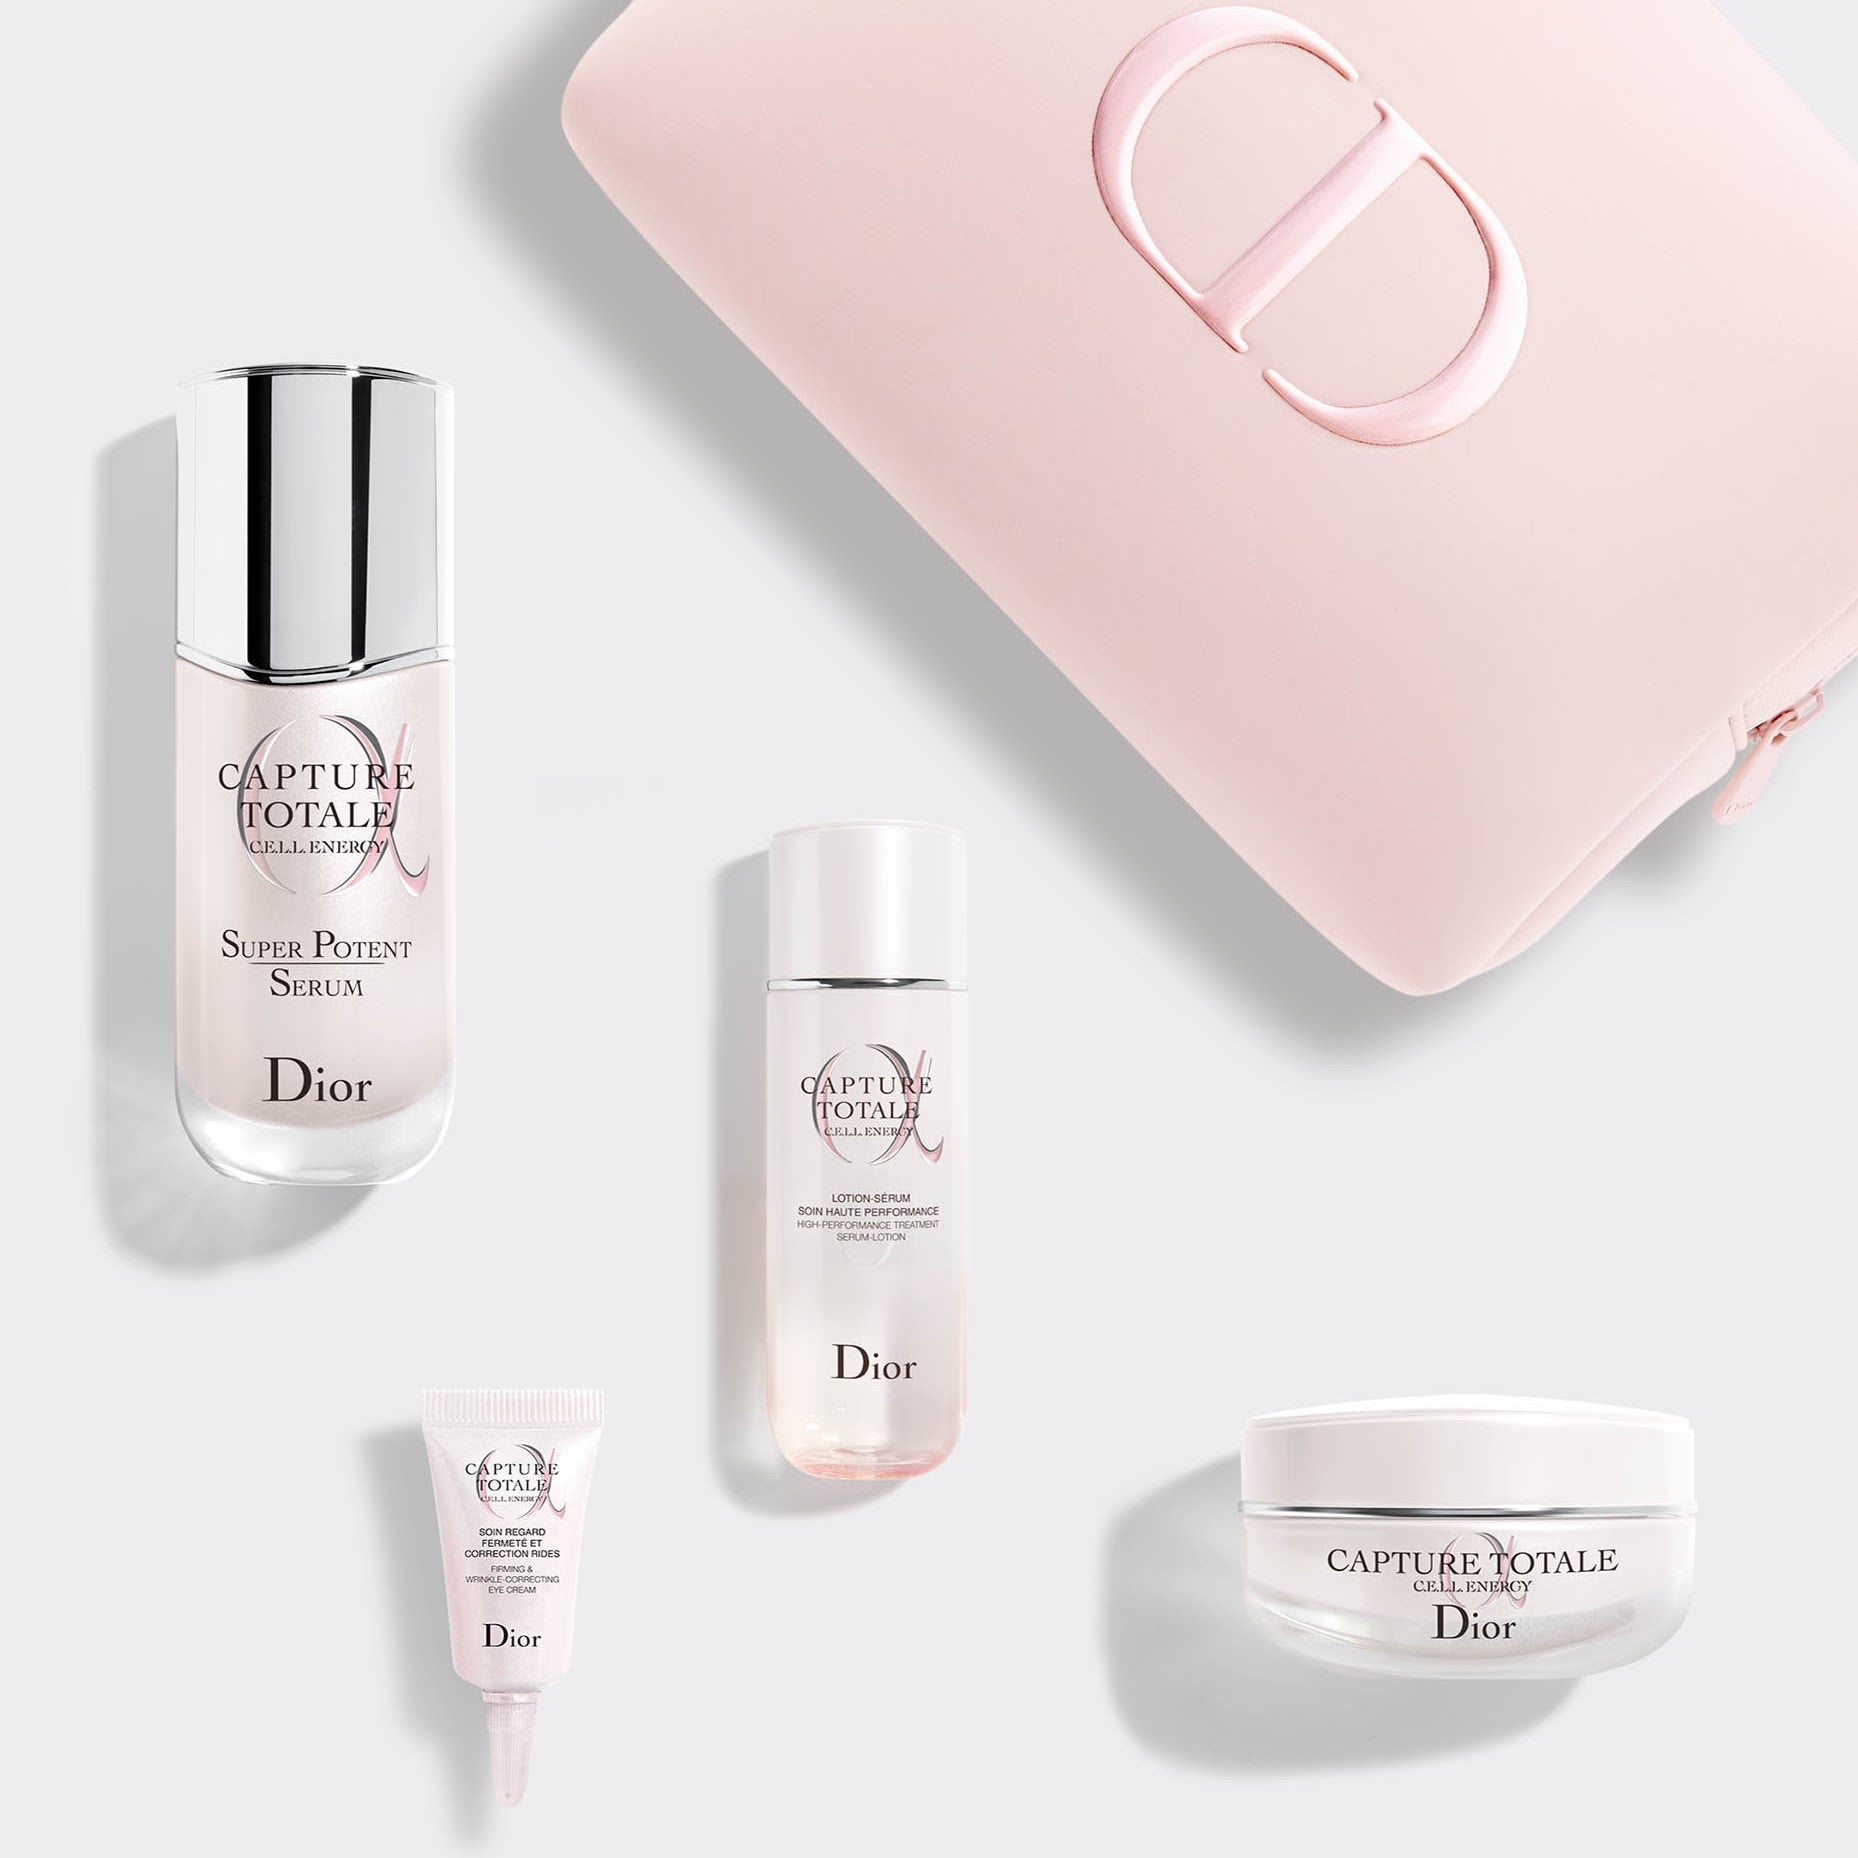 CAPTURE TOTALE OFFER ~ Exclusive skincare set: the total age-defying intense ritual